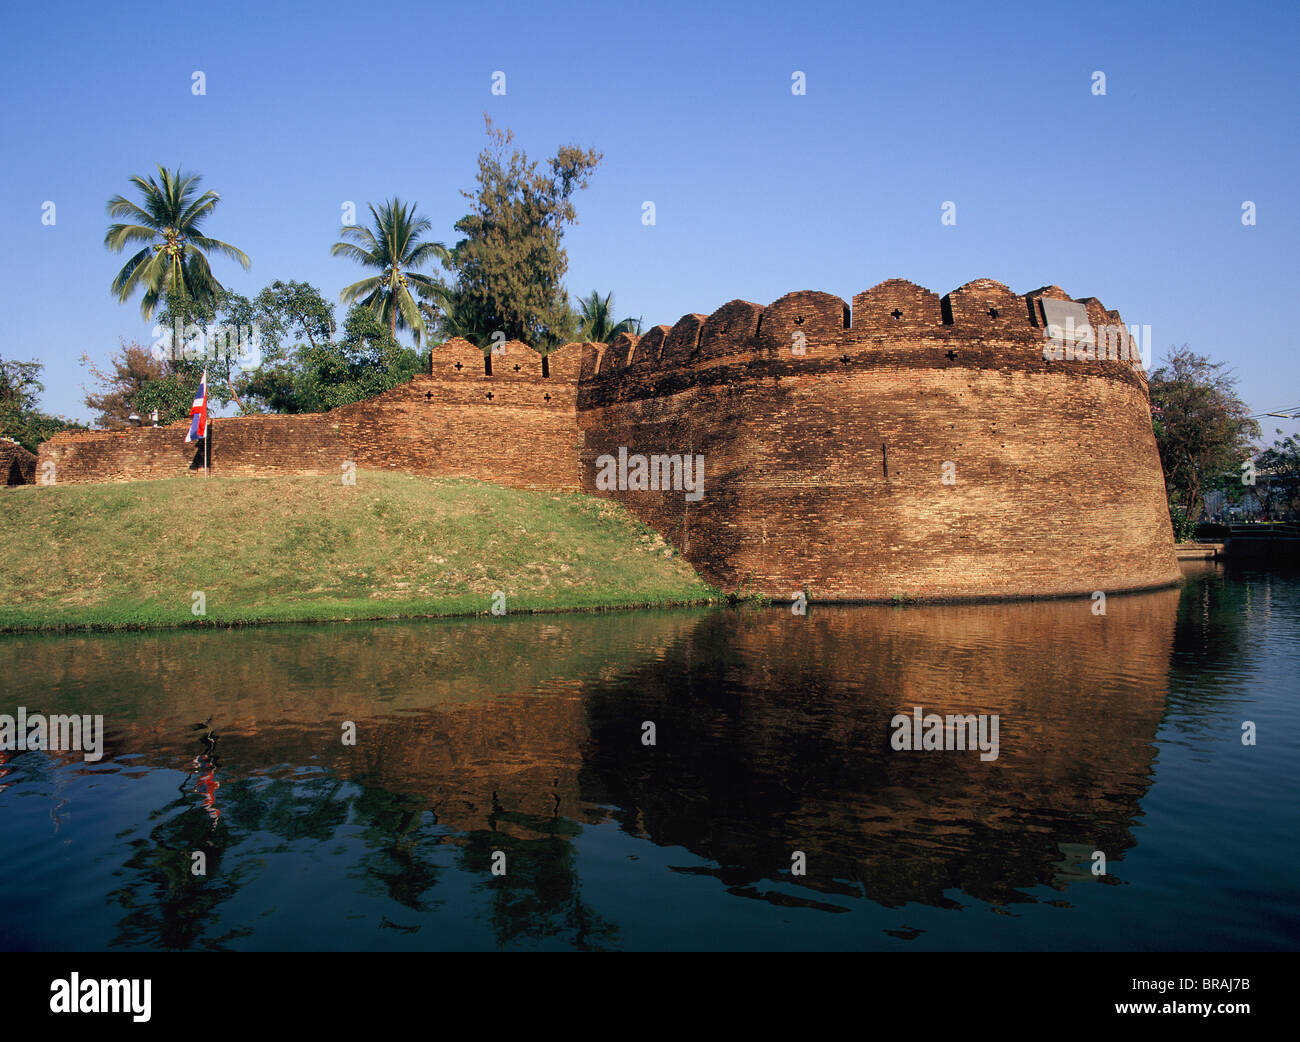 Corner tower and moats of the ancient walled city of Chiang Mai, Thailand, Southeast Asia, Asia - Stock Image